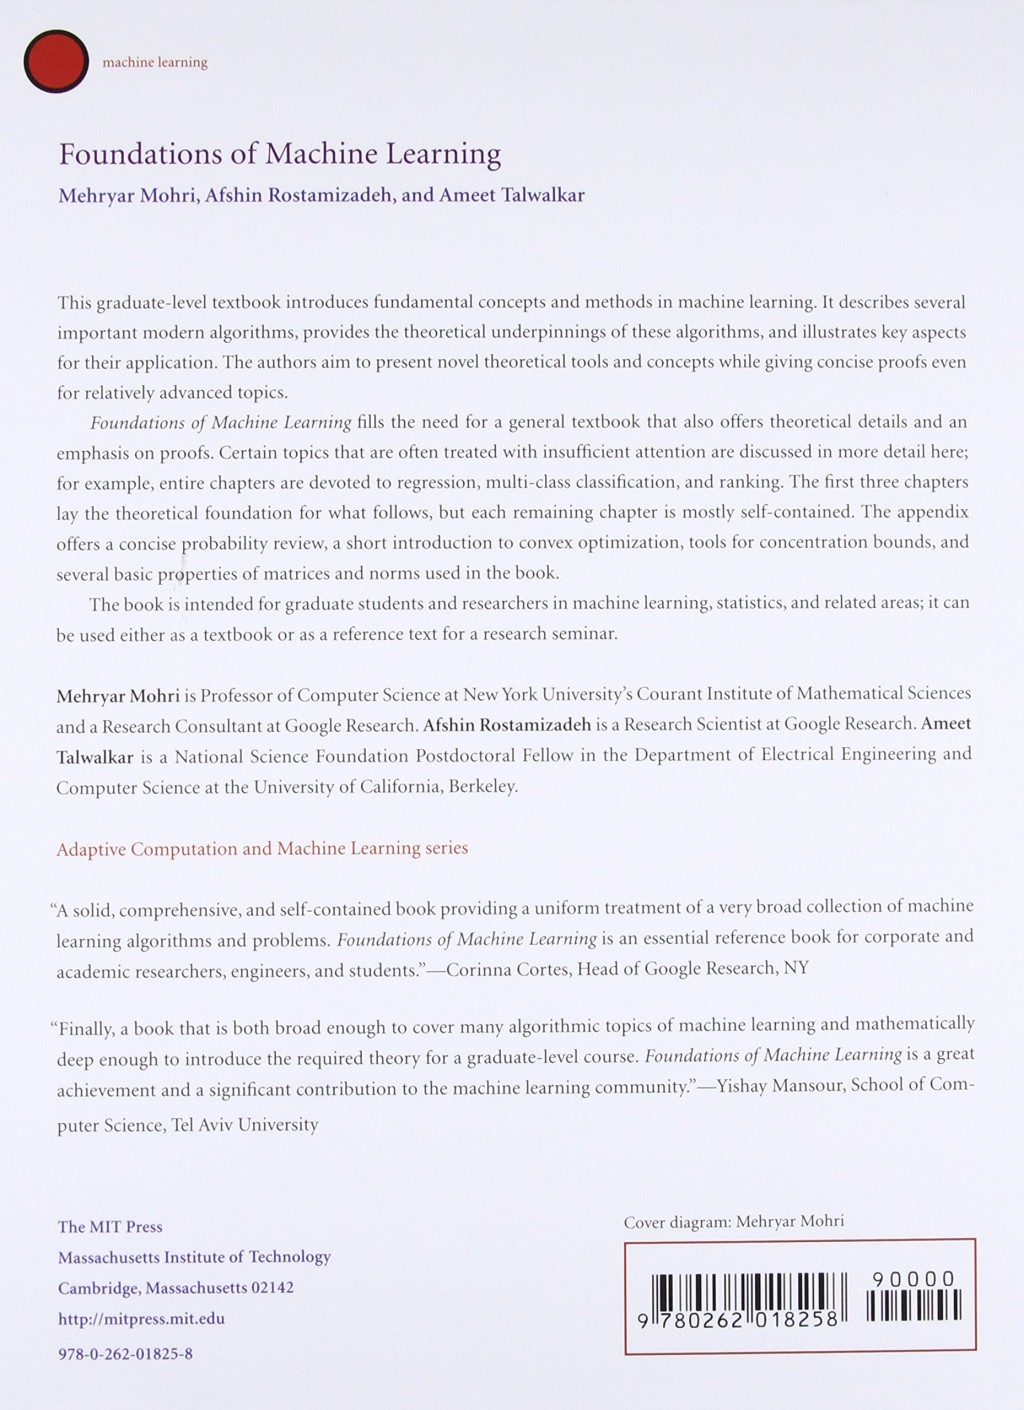 011 Buy Essay Uk Example Outstanding Law Cheap Large